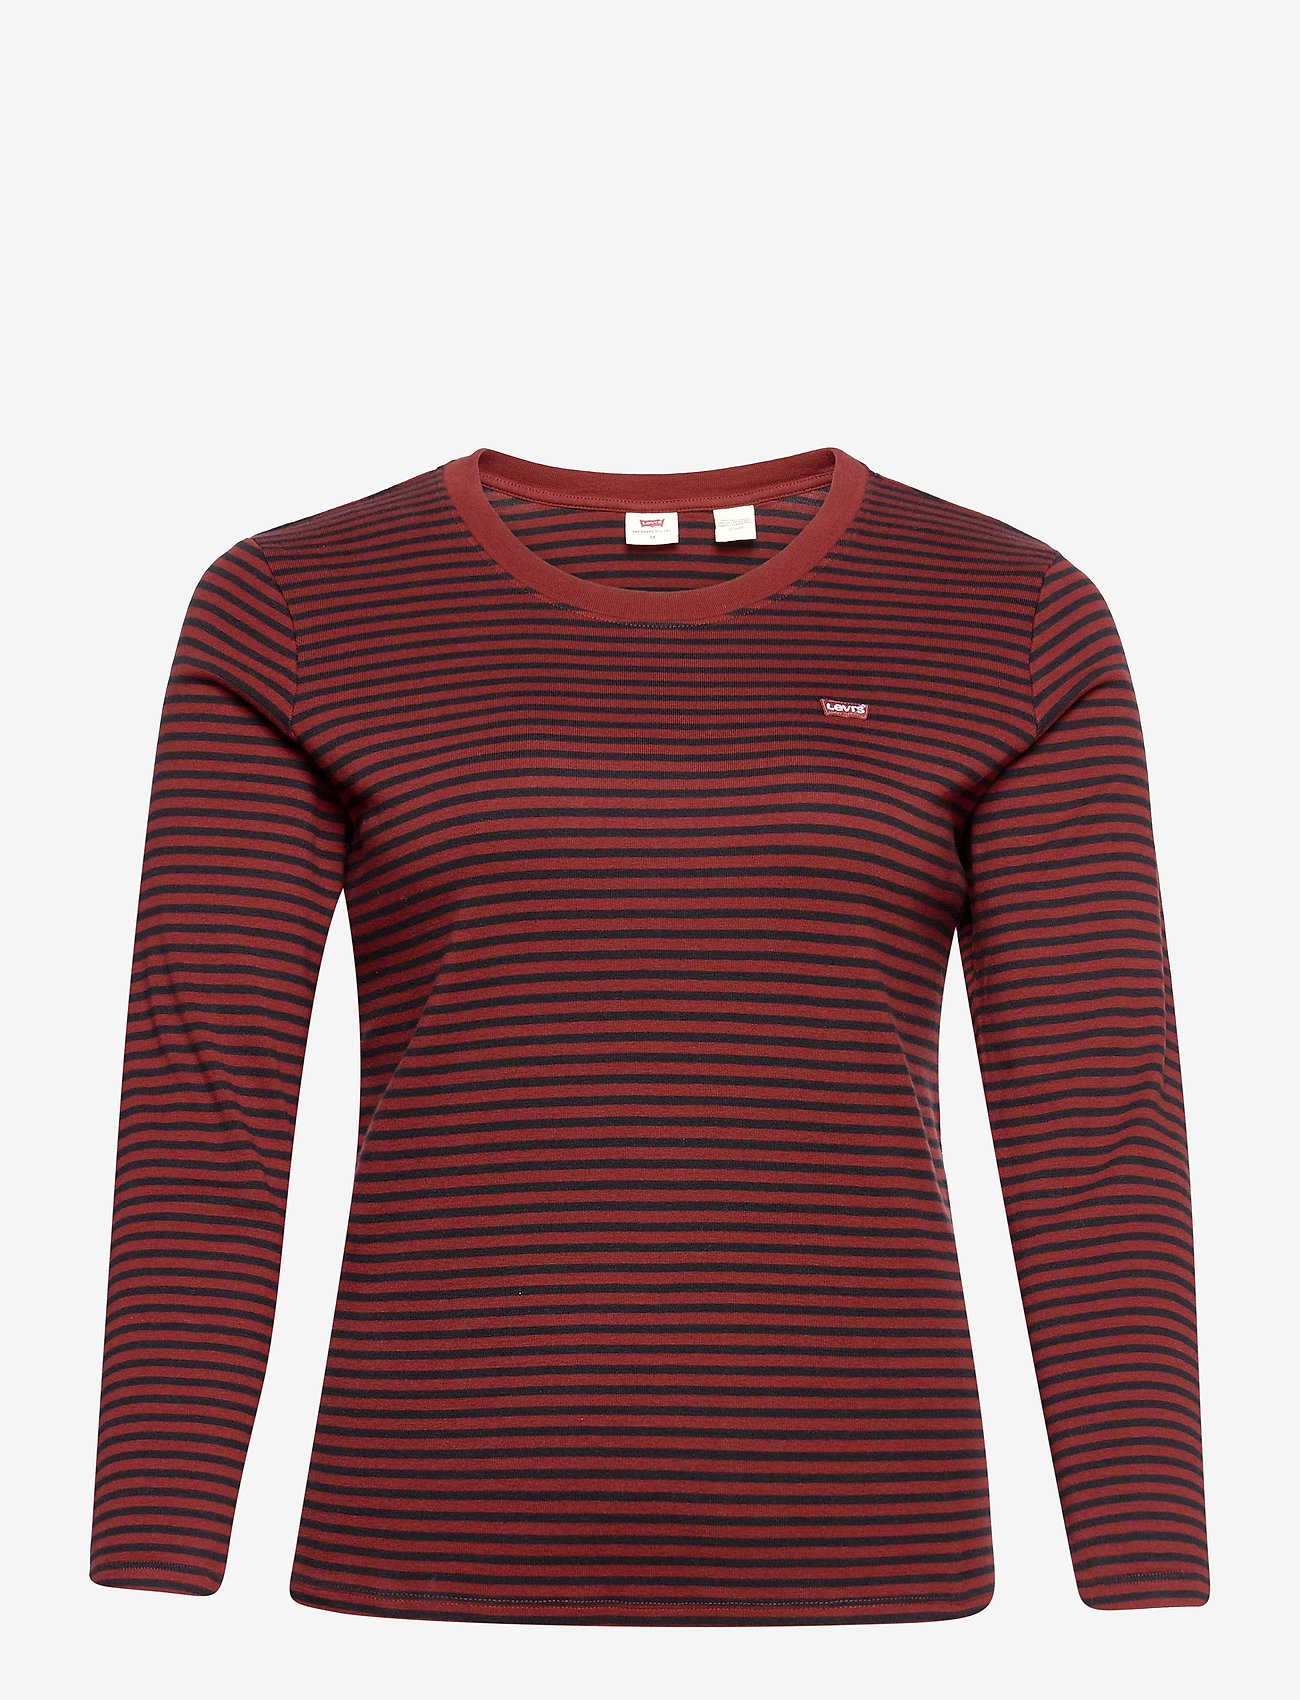 Levi's Plus Size - PL LONG SLEEVE BABY TEE AYA MA - t-shirt & tops - multi-color - 0